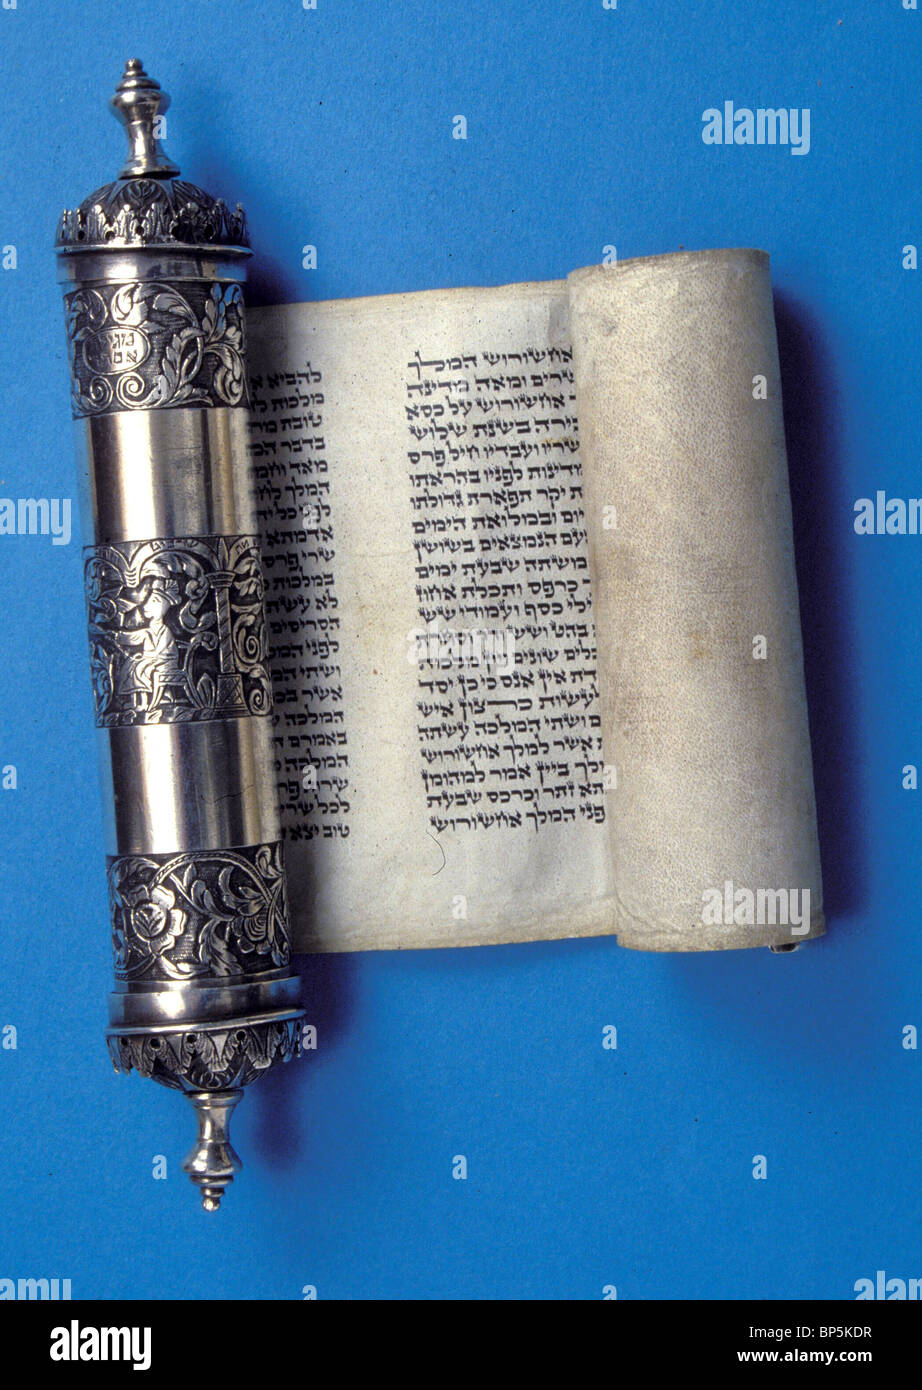 5142. ESTHER SCROLL, TEXT READ ON PURIM, A FESTIVAL COMMEMORATING THE DELIVERANCE OF JEWS IN PERSIA FROM MASSACRE - Stock Image